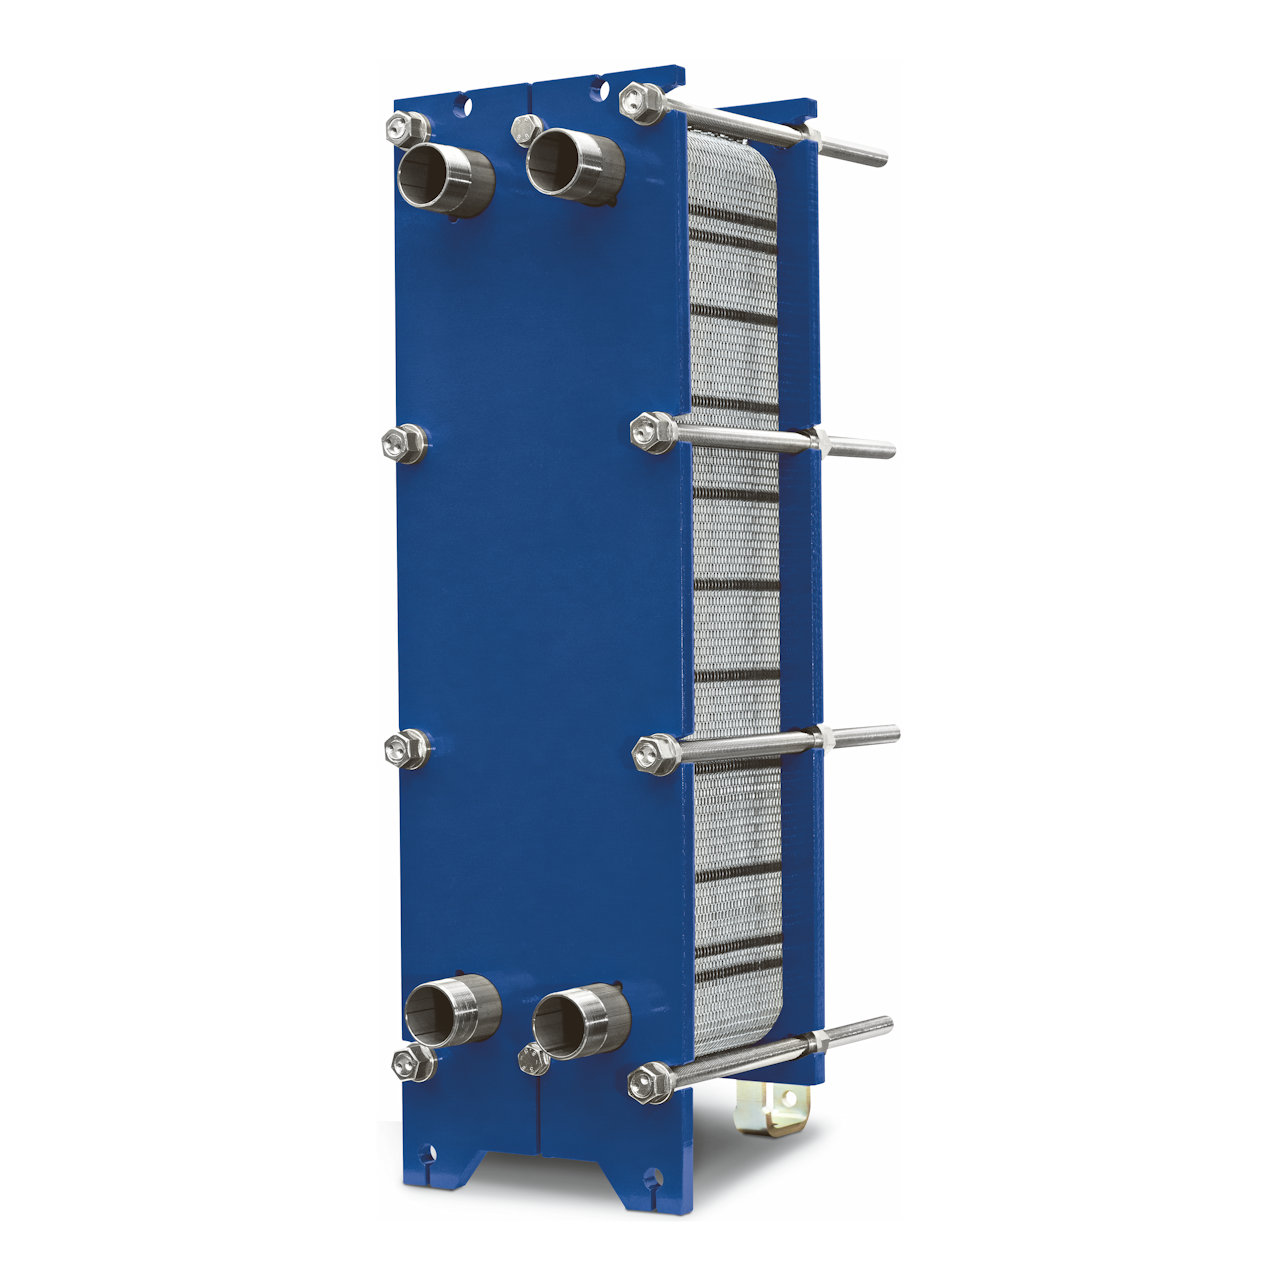 carrier-10TE-DN200-S650-gasketed-plate-heat-exchanger